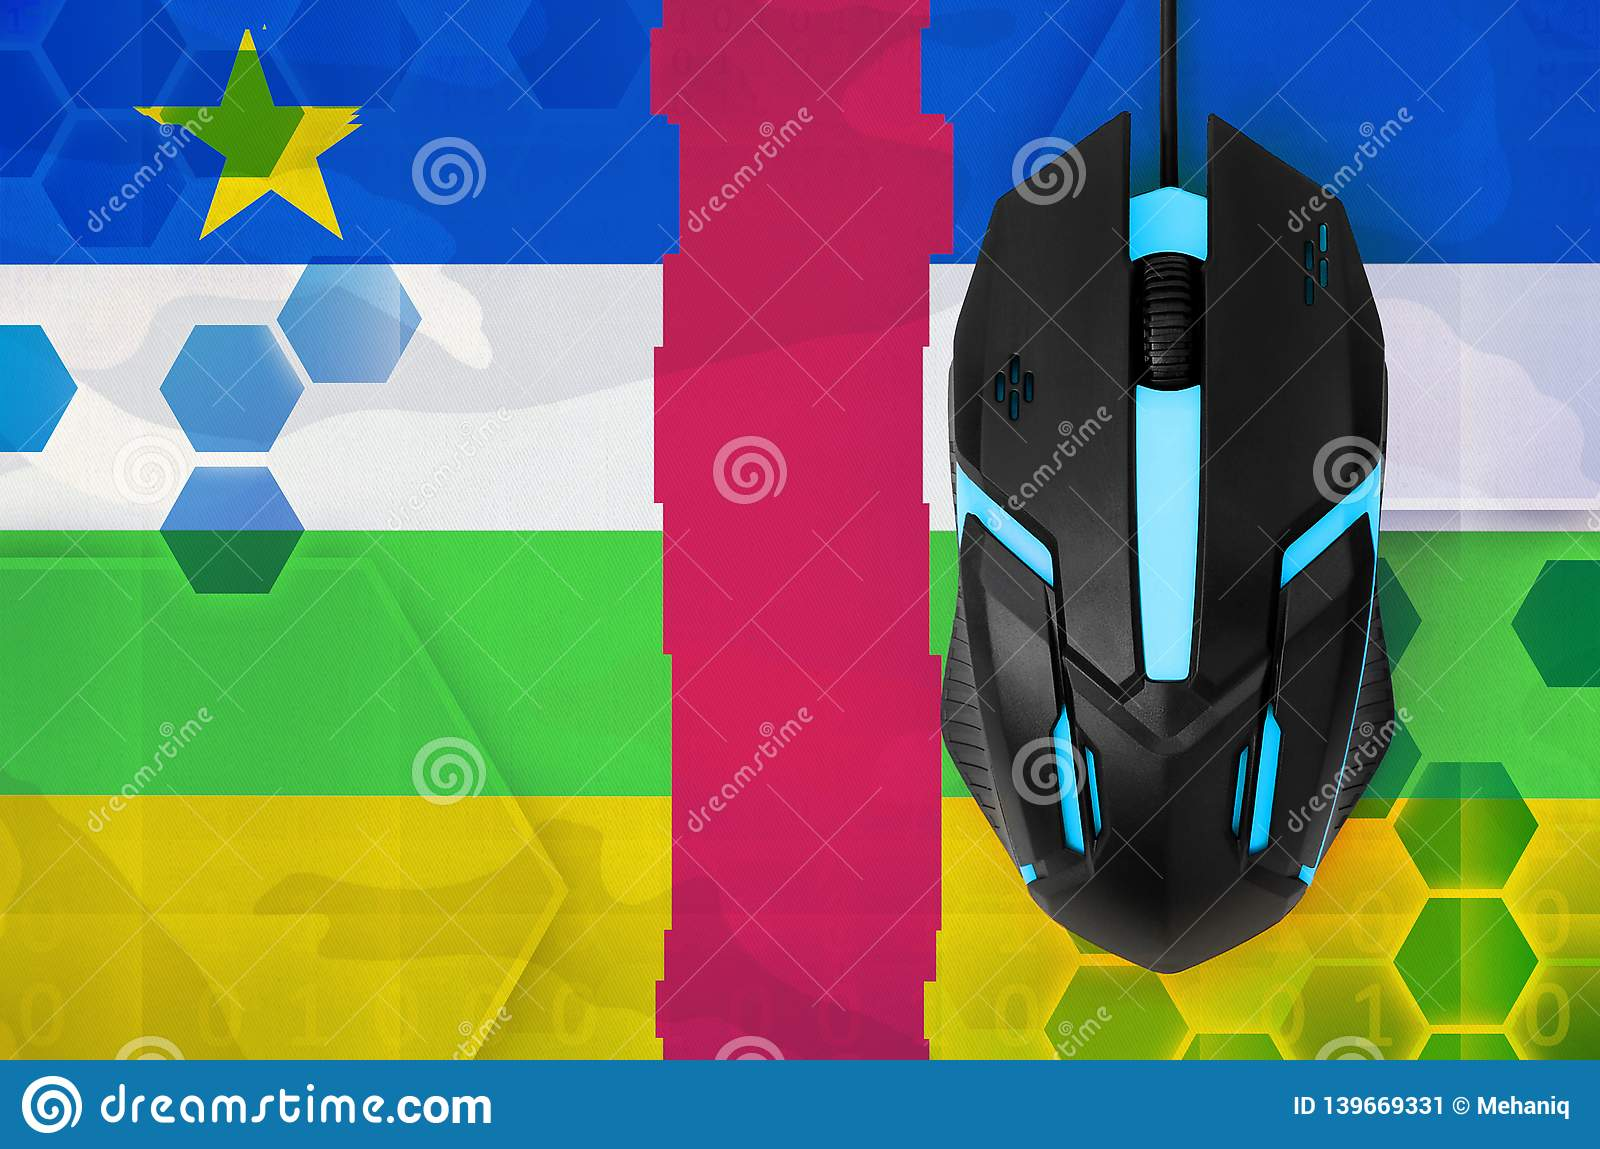 Central African Republic flag and computer mouse. Concept of country representing e-sports team